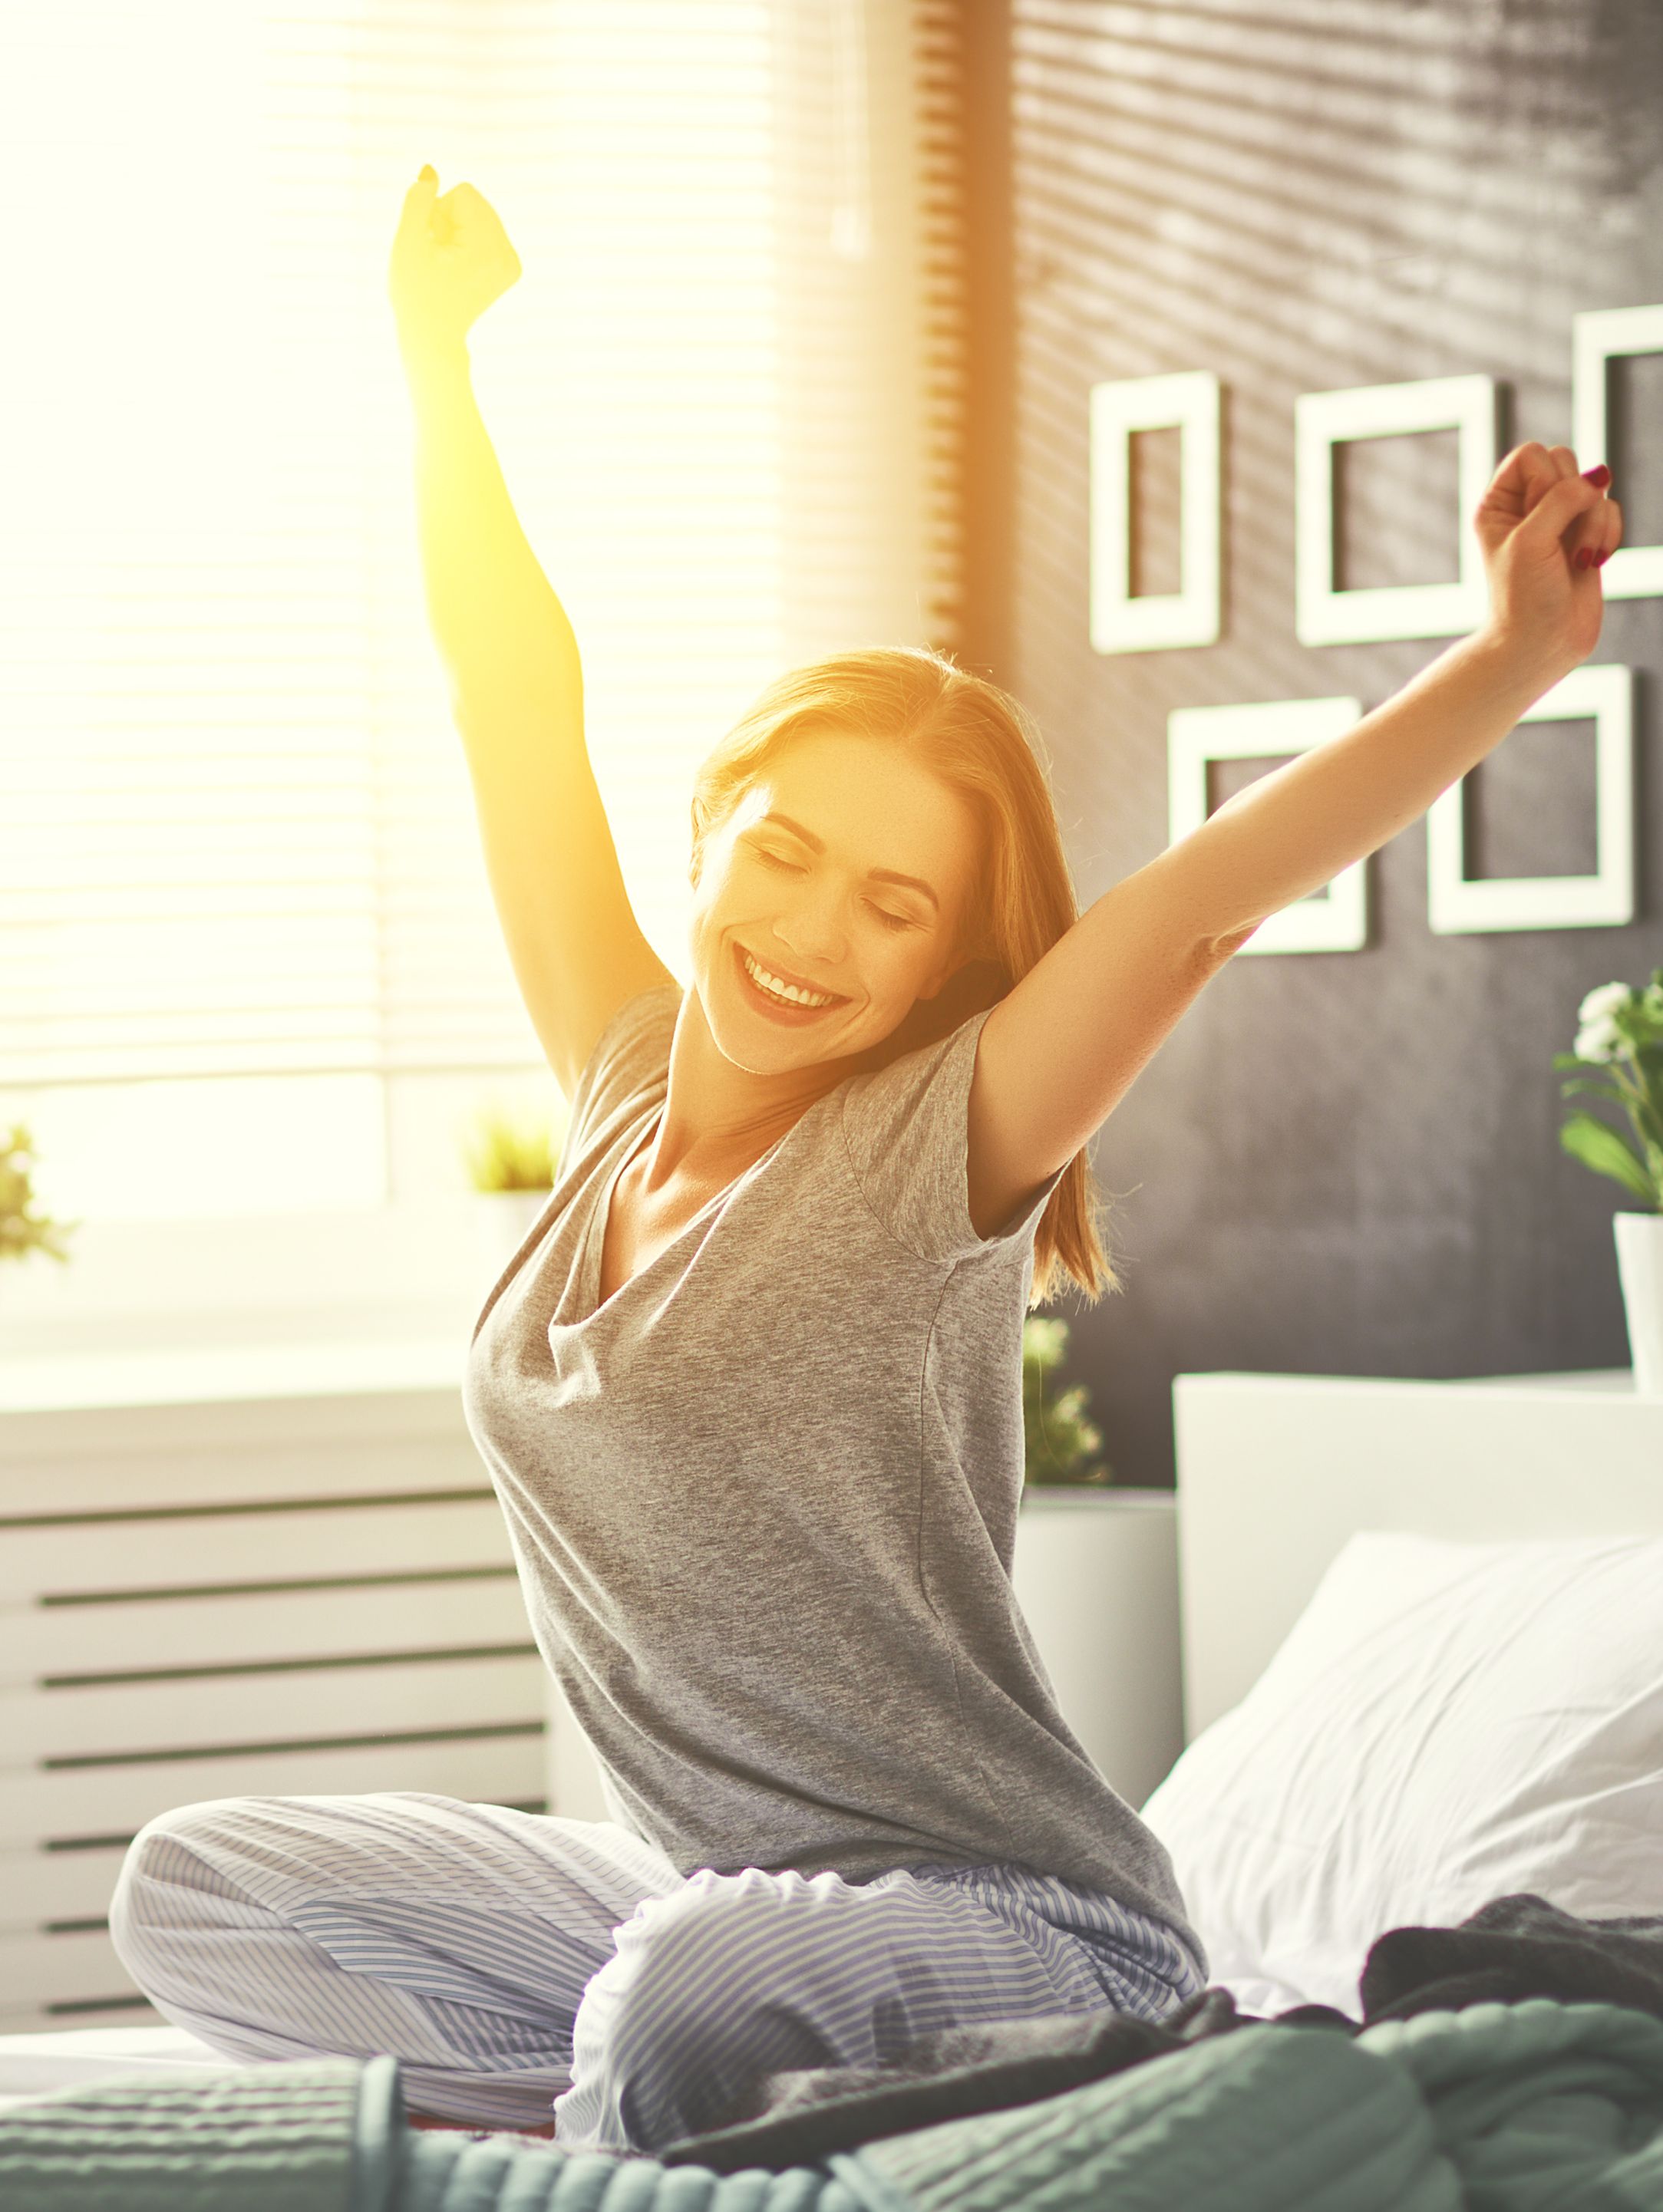 7 sleep benefits (or 7 good reasons to take care of your rest!)